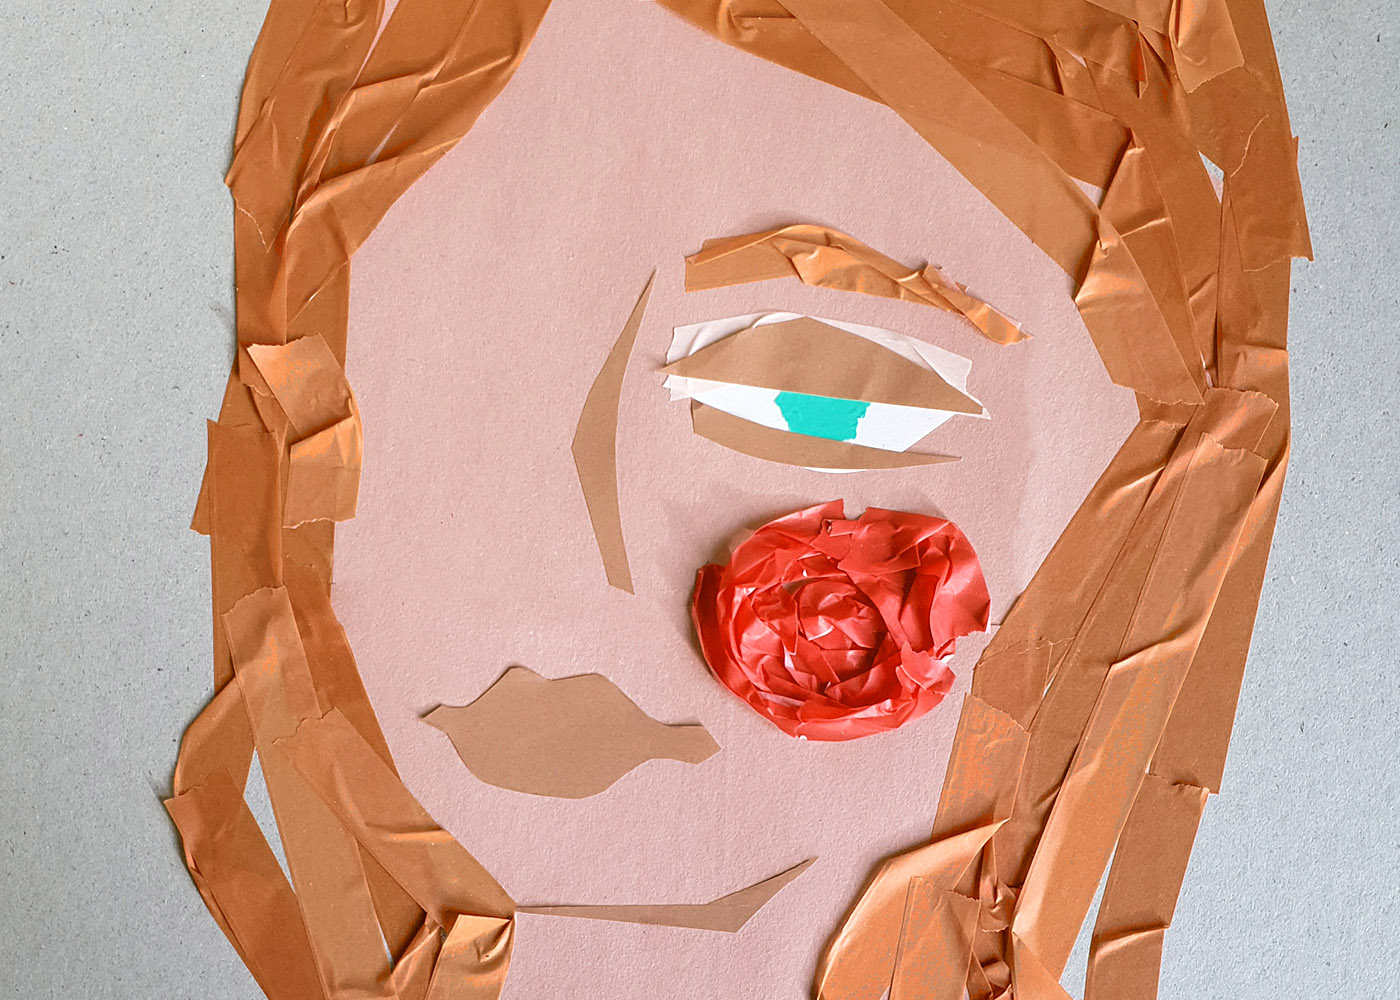 How to Care for Rosacea